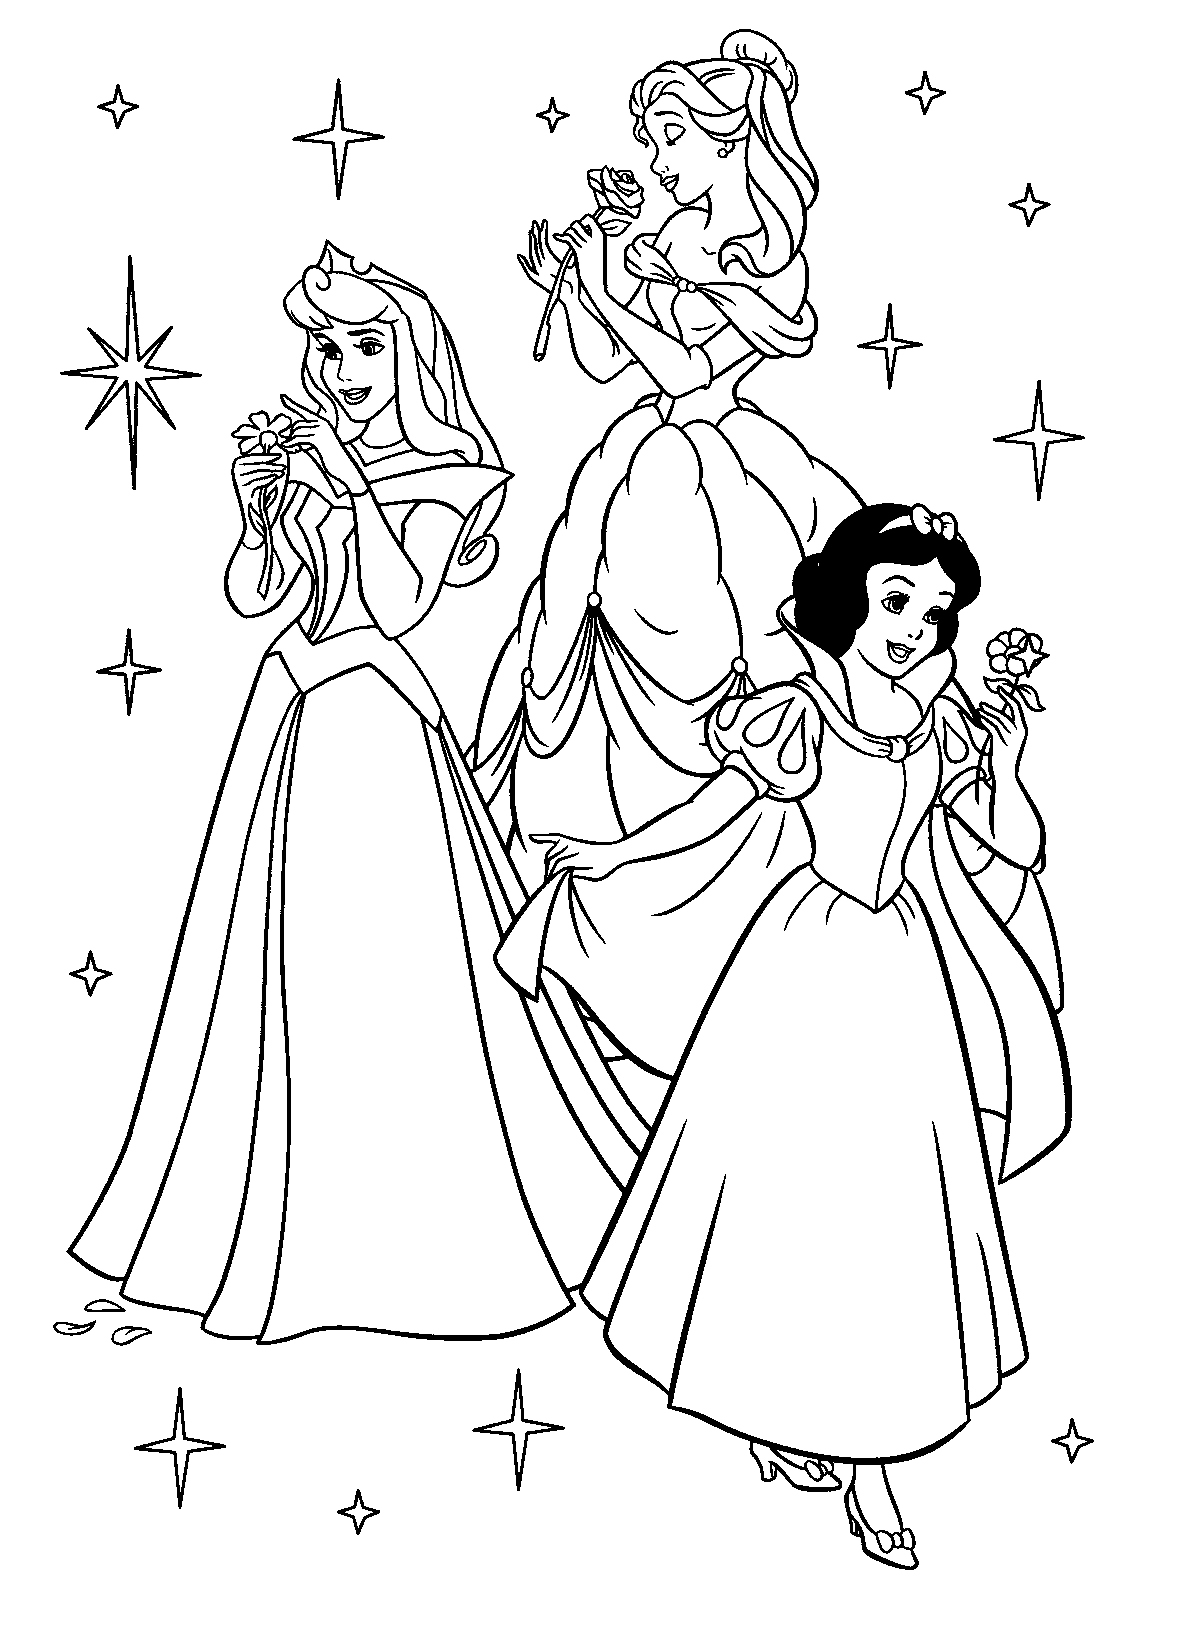 Coloring Pages For Free Disney Rsad Coloring Pages Kleurplaten Disney Kleurplaten Disney Prinsessen